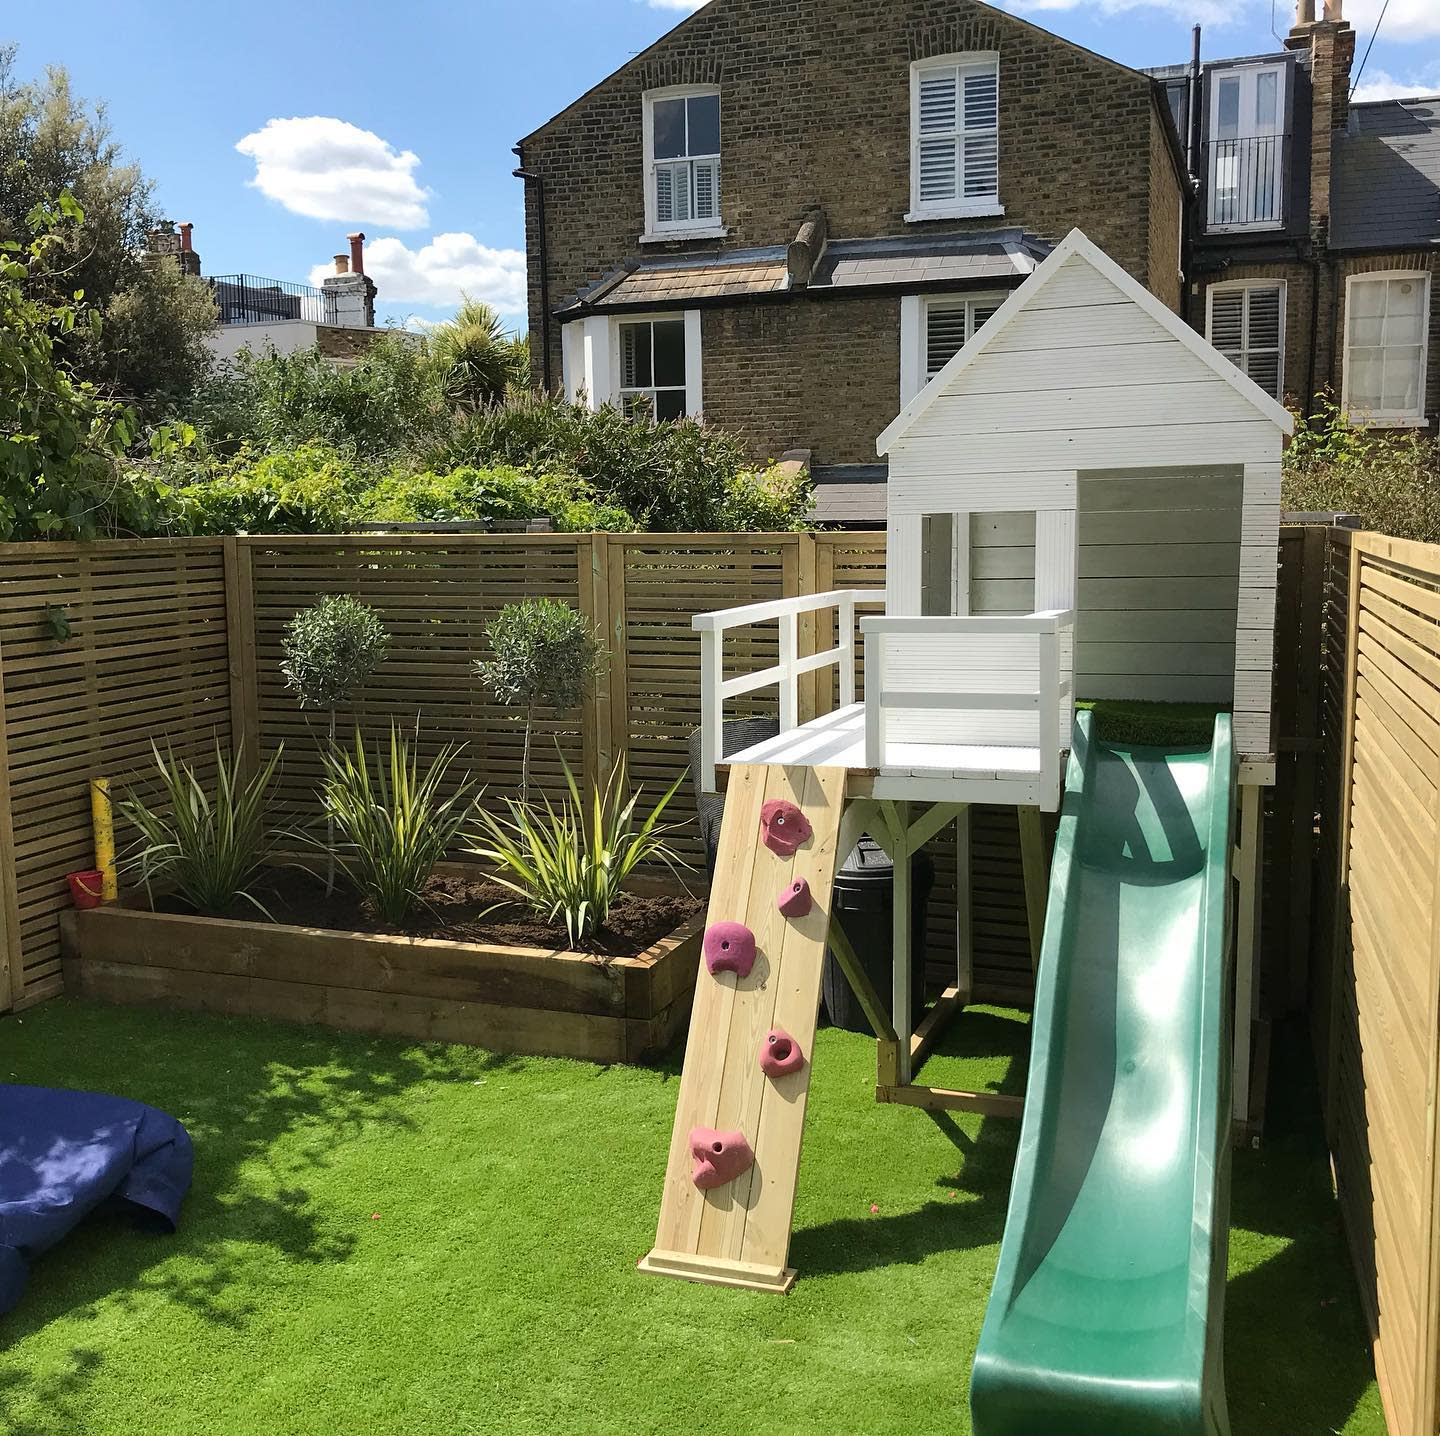 Small Backyard Landscaping Ideas on a Budget 2 -culverlandscaping